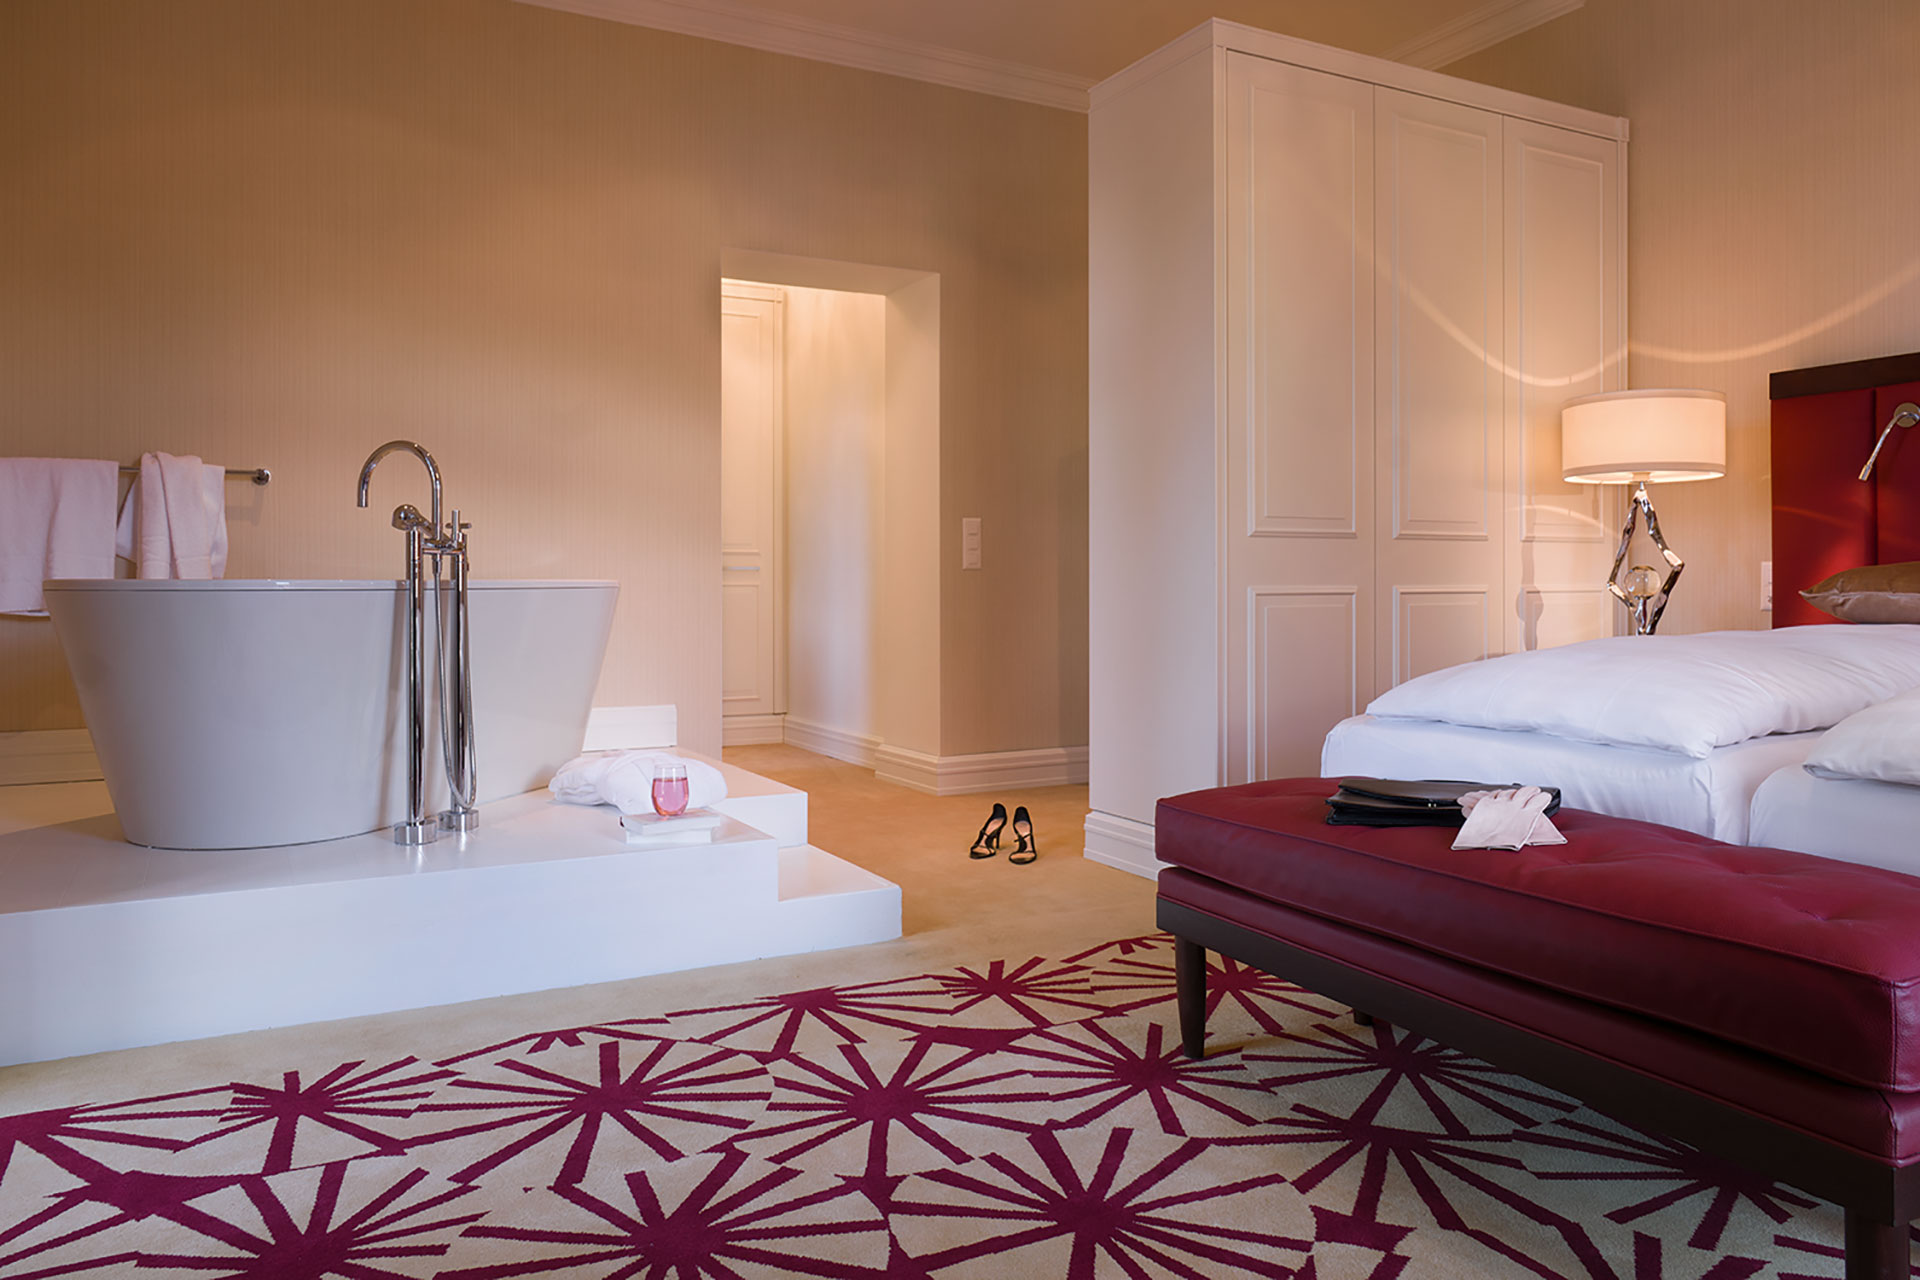 an interior shot of a two bed suite. The two beds are donned in white linens and there are accents of red around the room in the headboards, bench, and carpet. There is a white stand alone tub in the corner of the room.